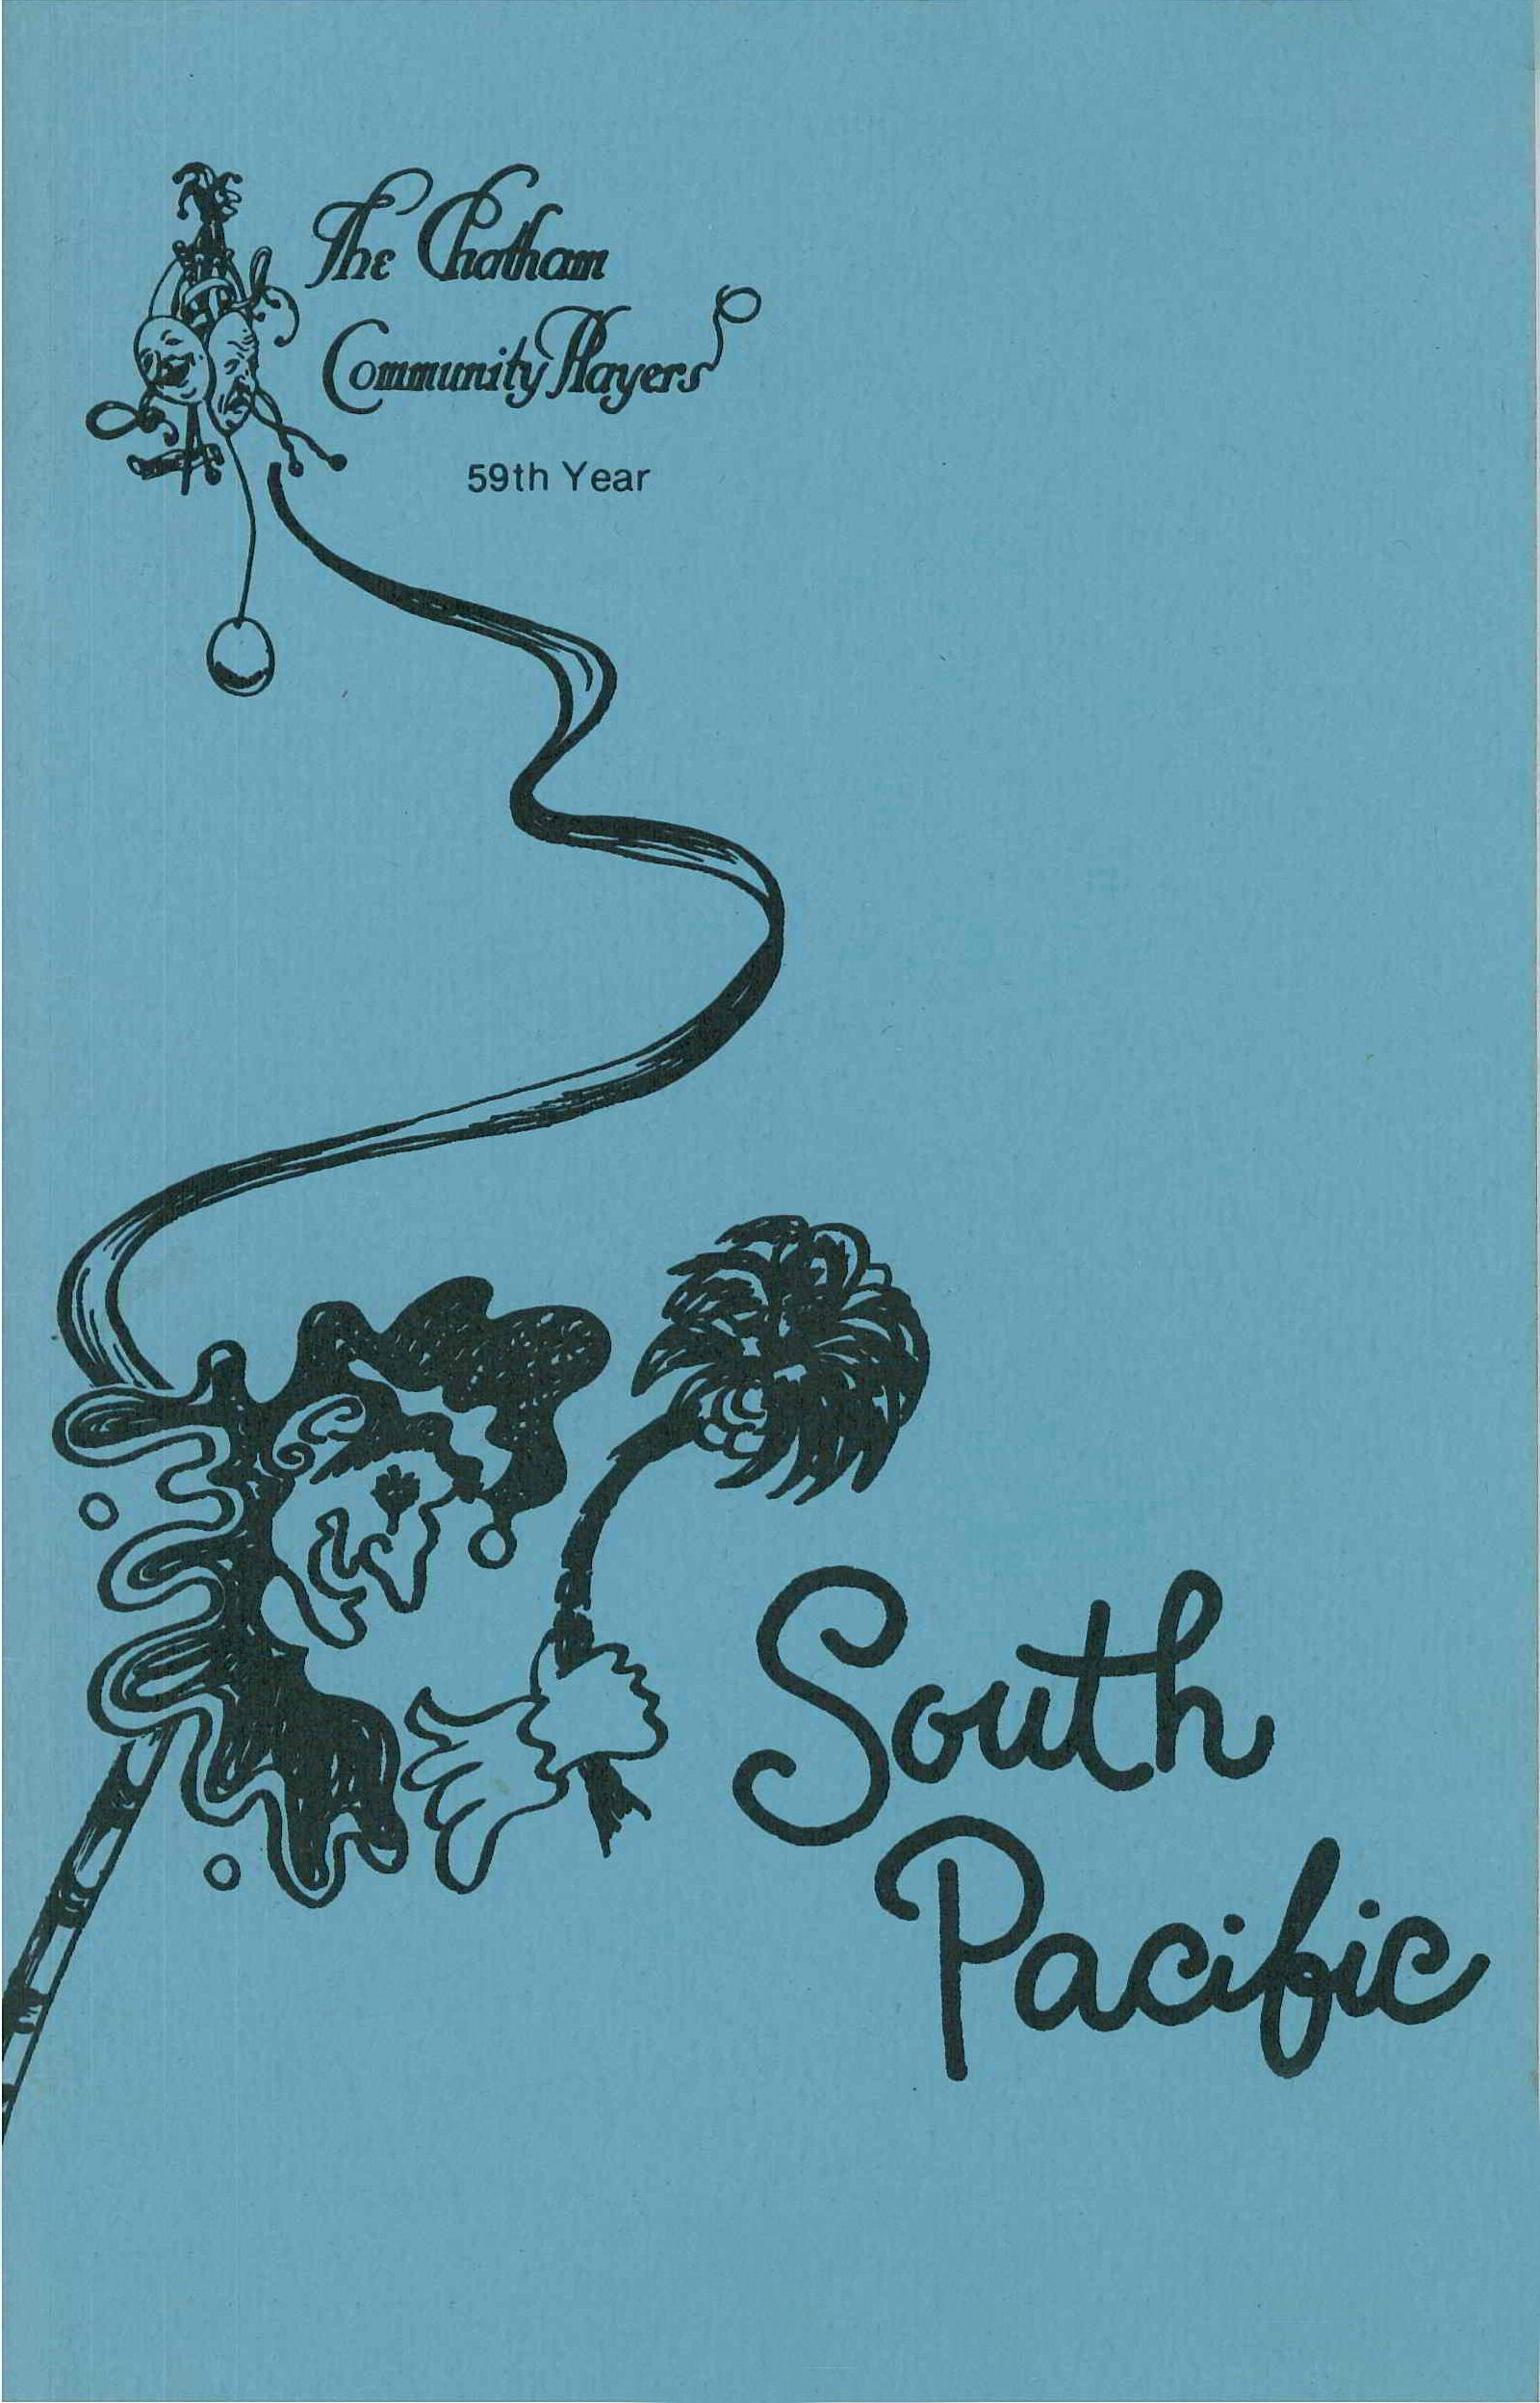 South Pacific (1980)